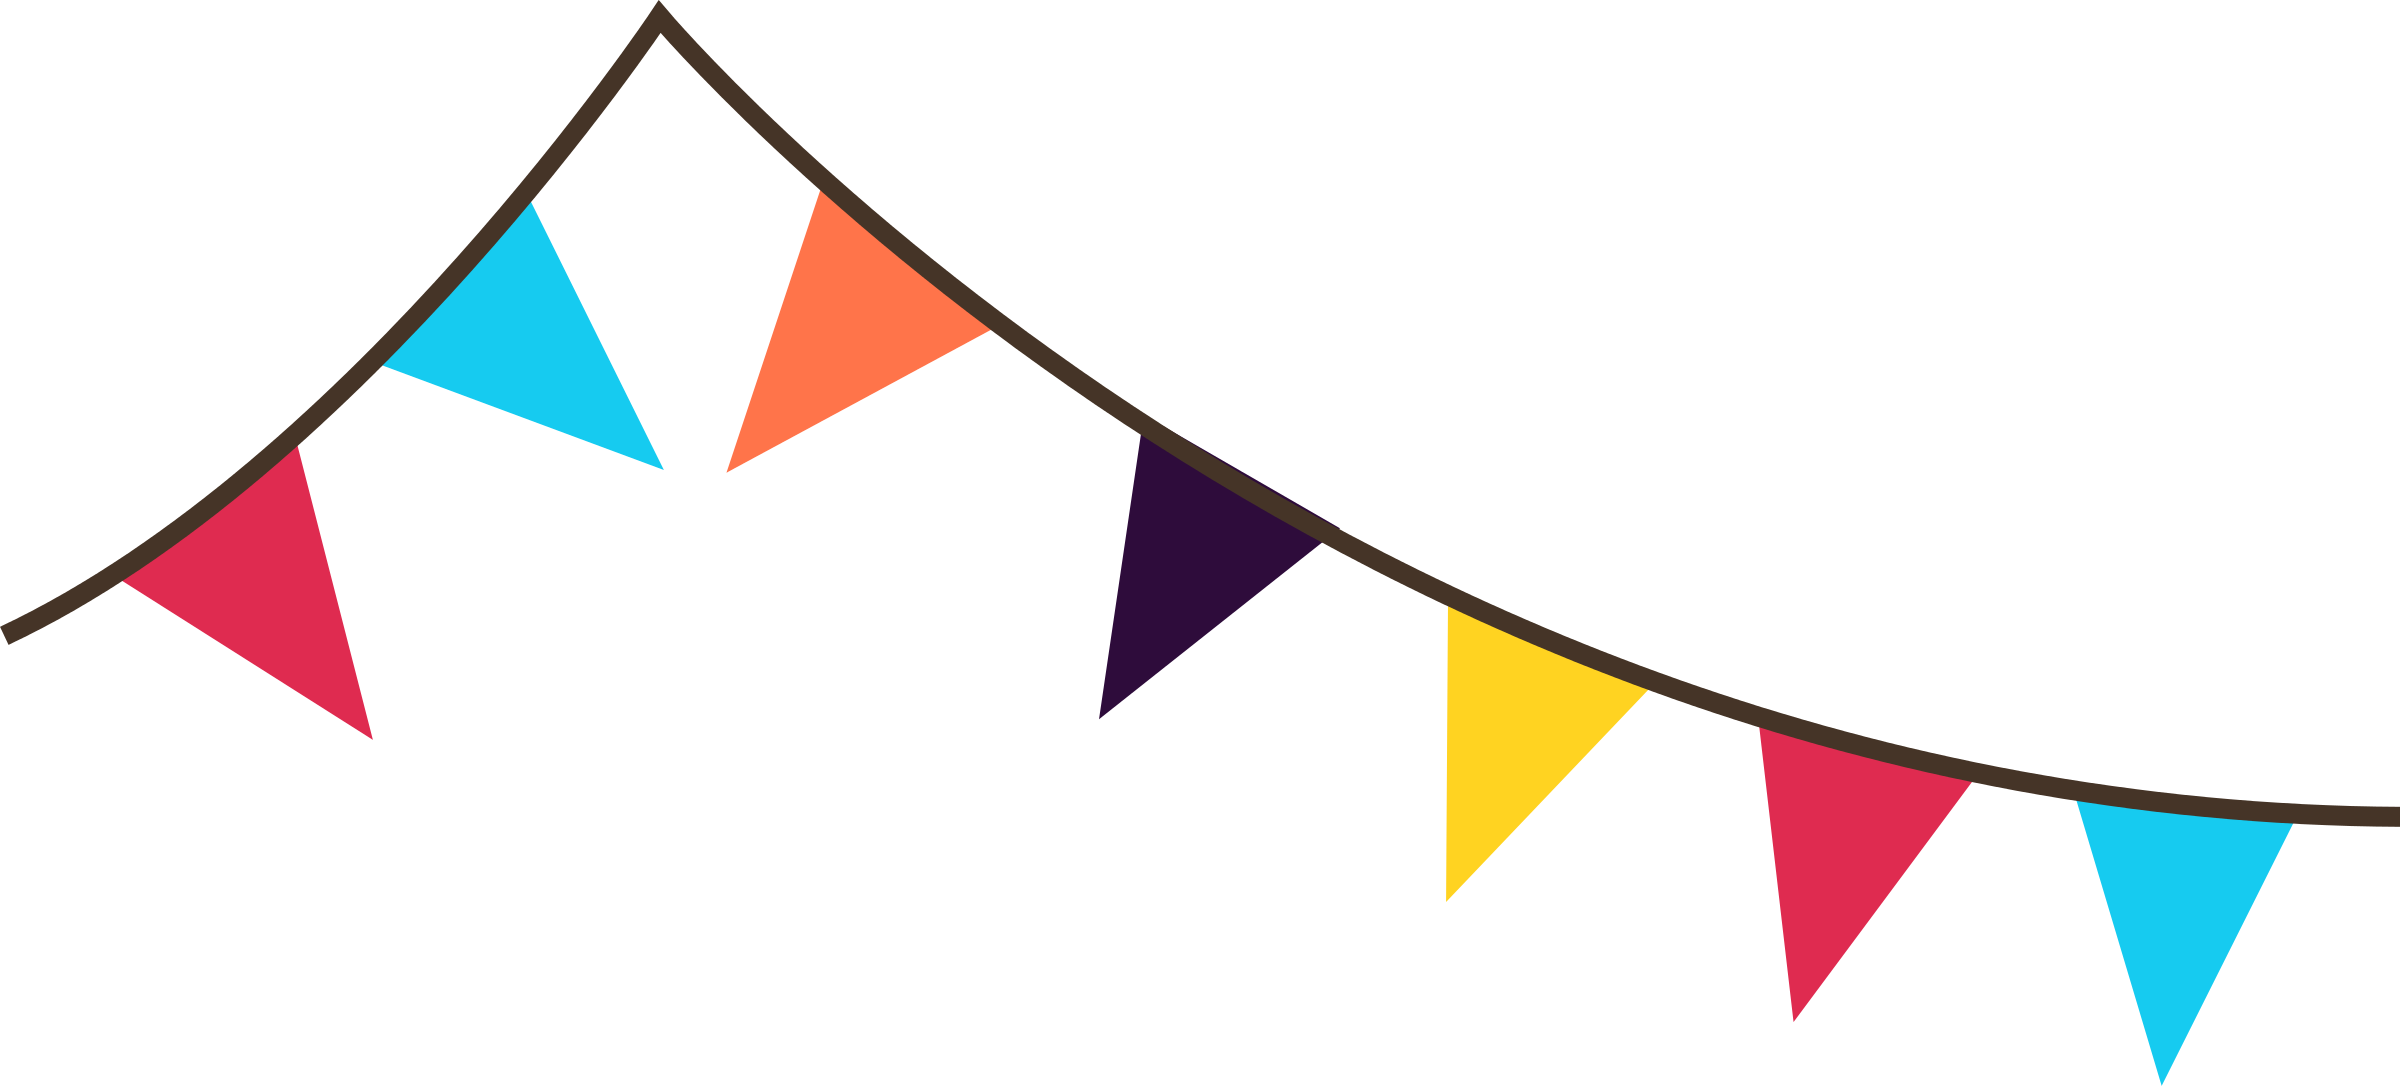 PNG Triangle Flag - 56794